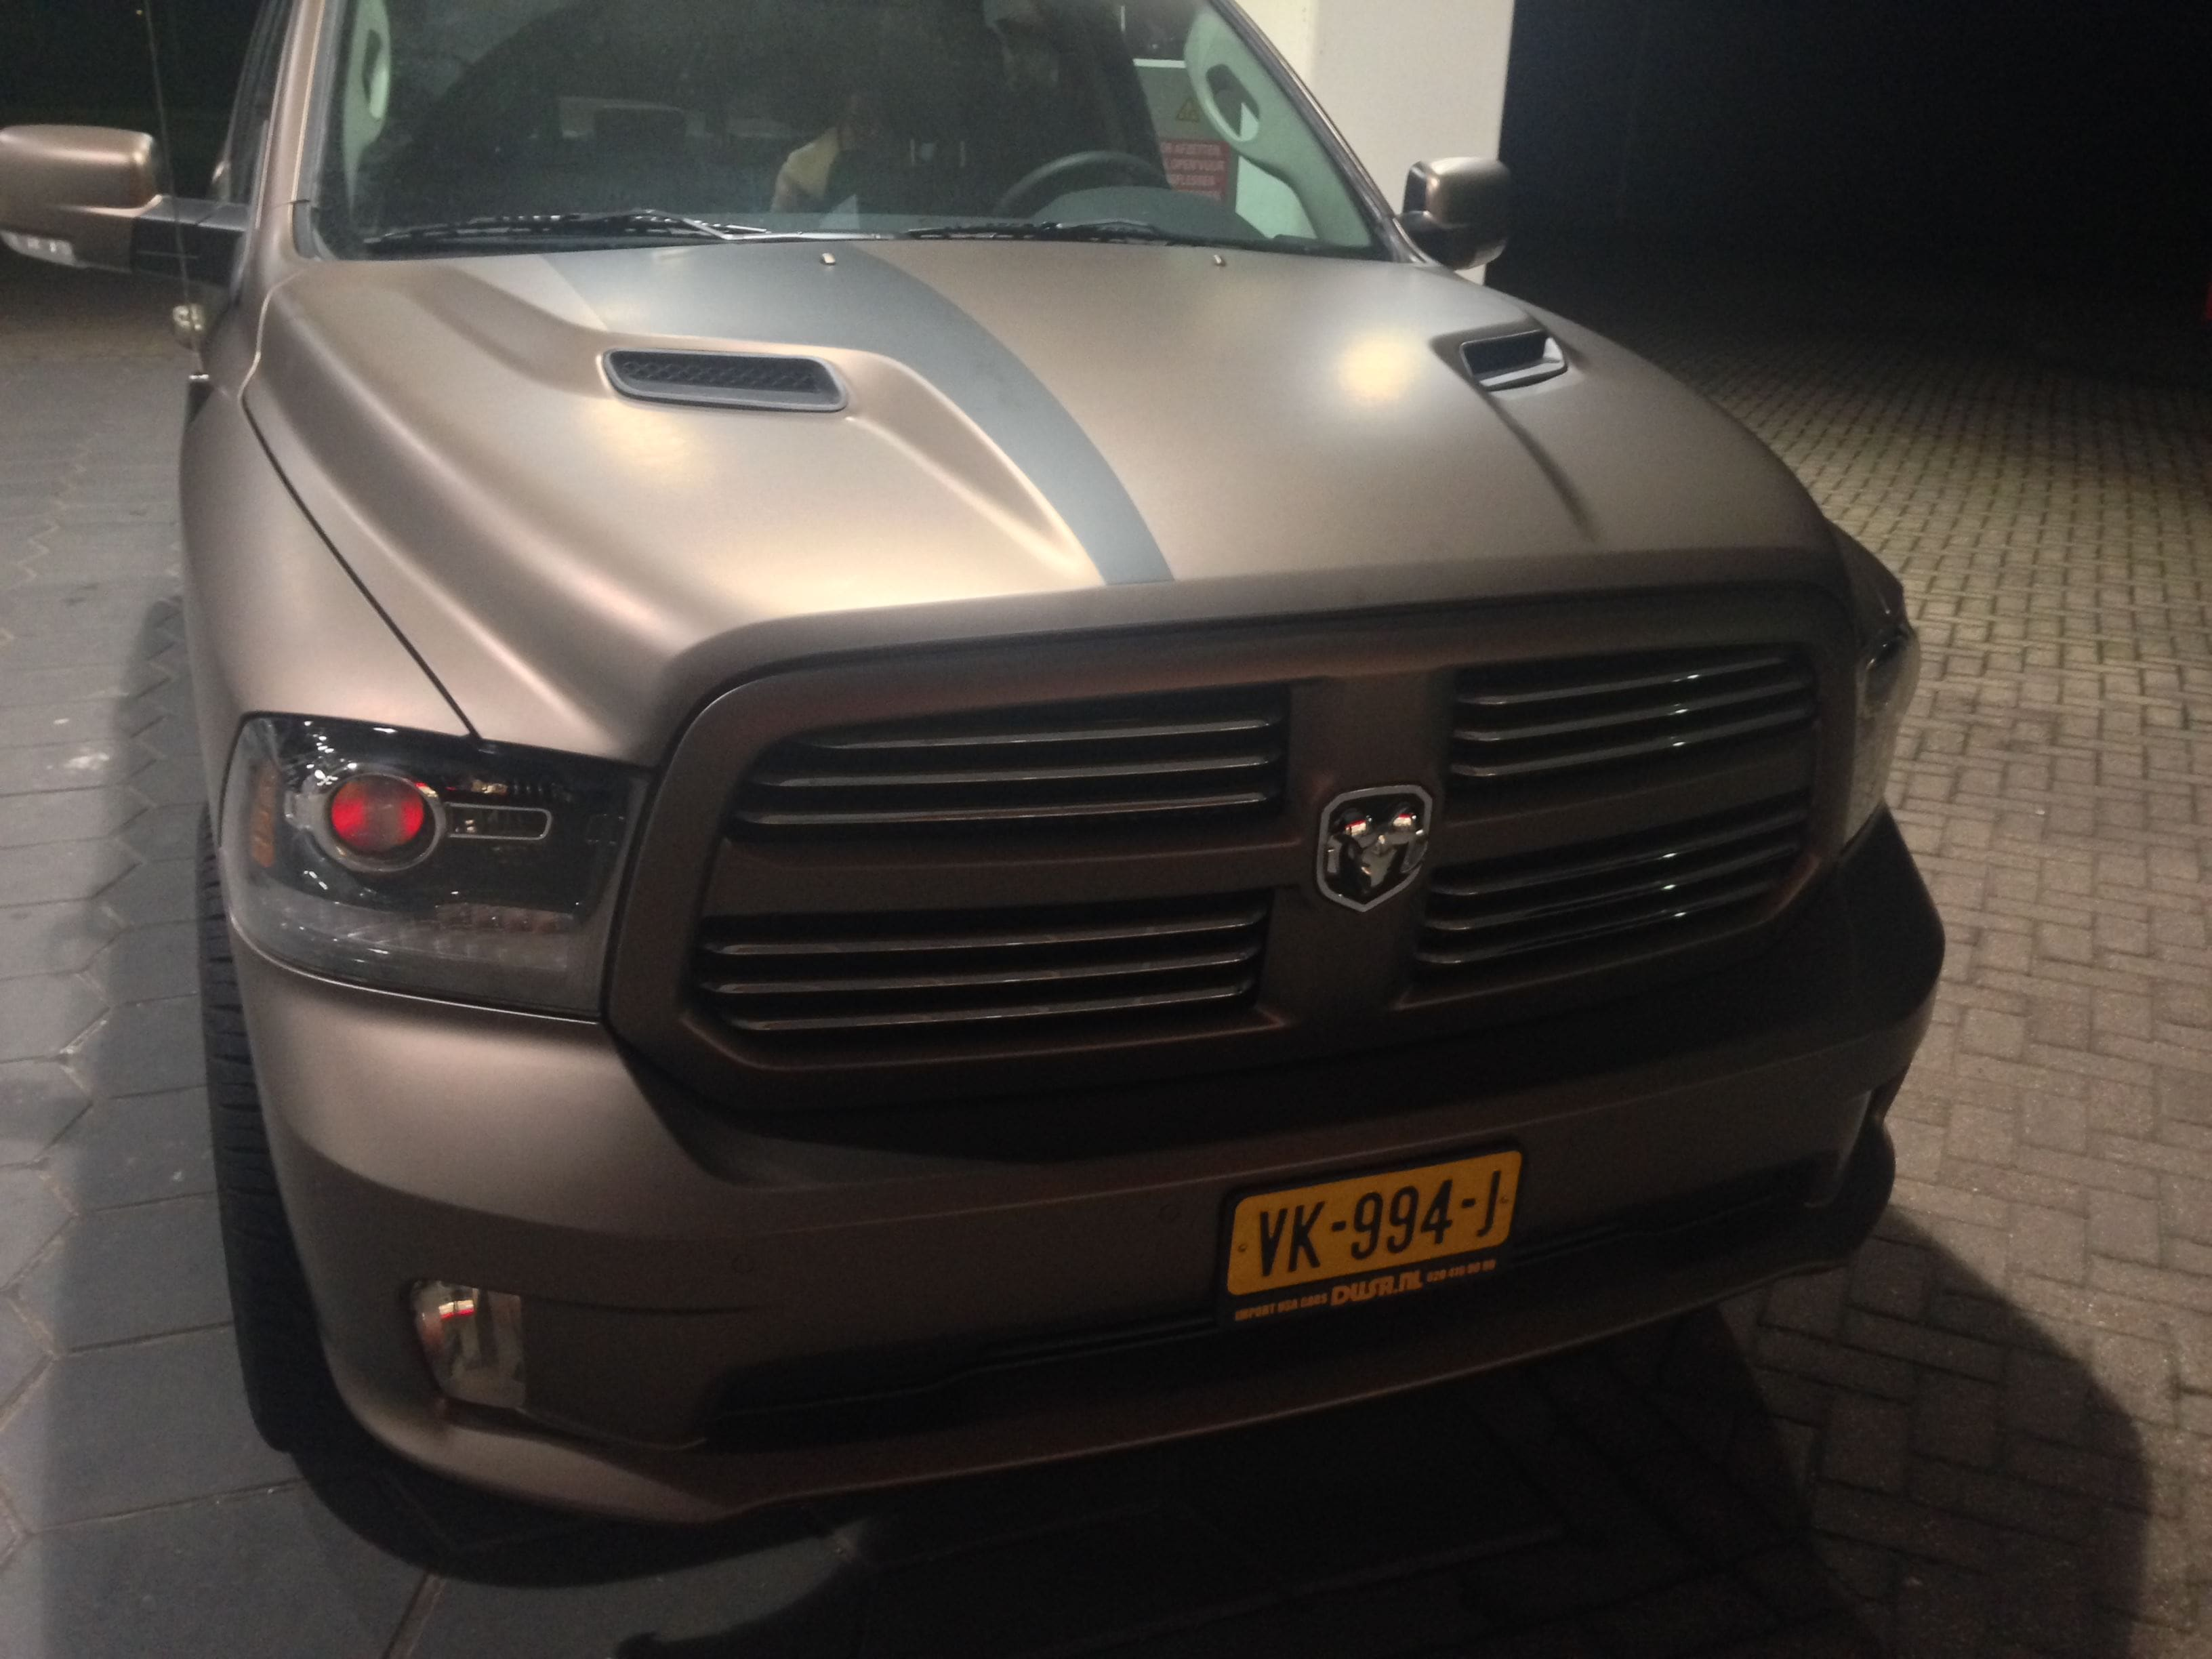 Dodge ram in een Mat metallic Brown Wrap, Carwrapping door Wrapmyride.nu Foto-nr:5613, ©2020